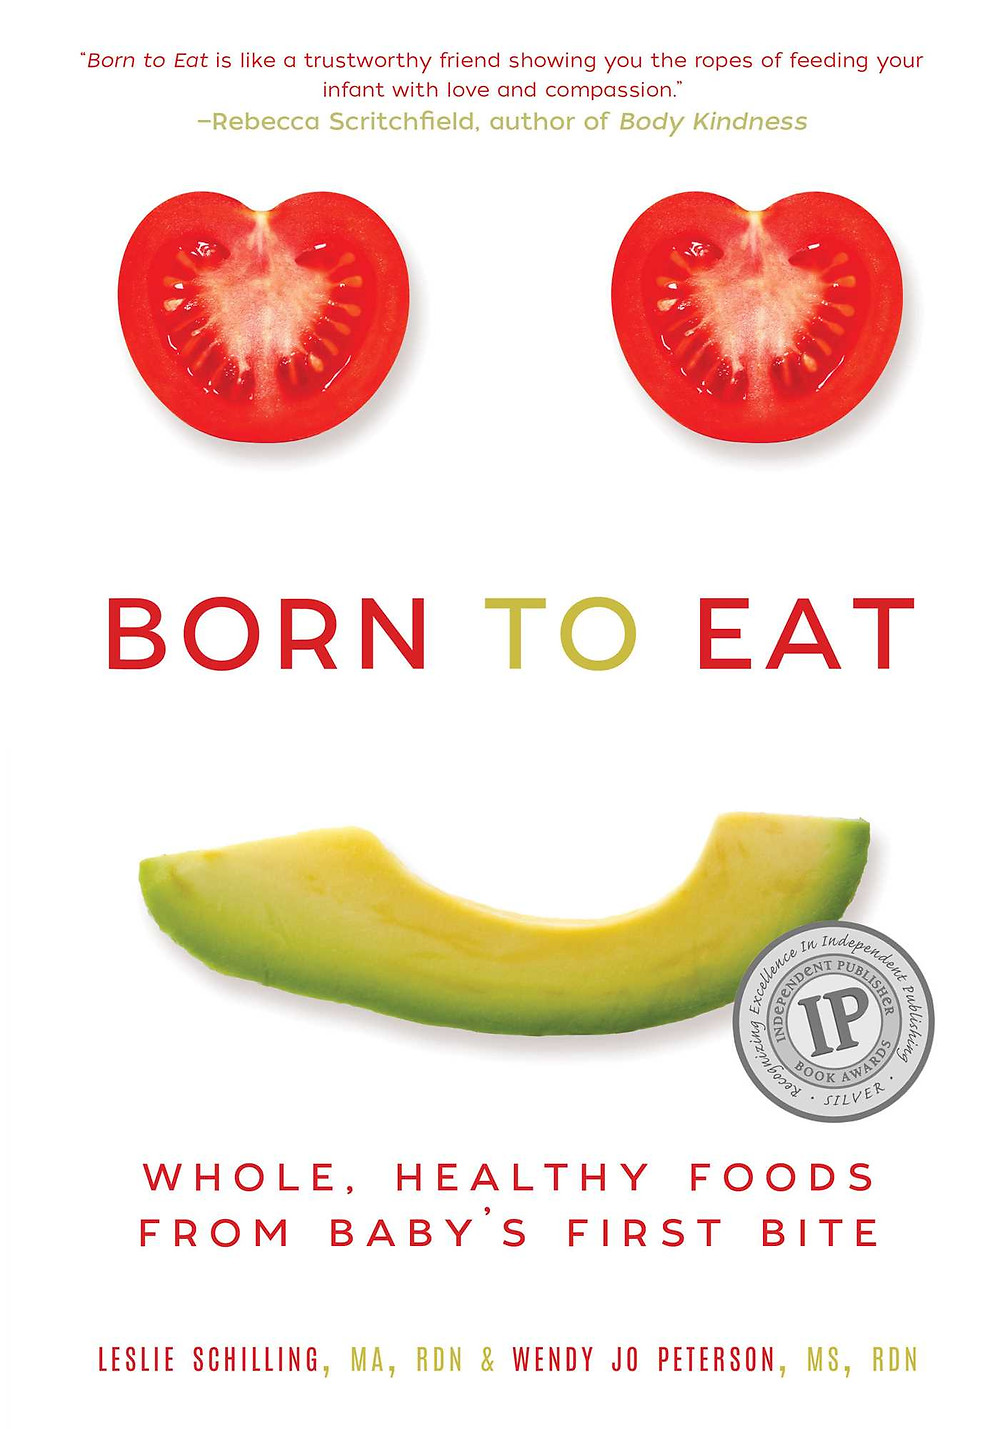 Leslie Schilling Born To Eat Whole Healthy Foods Baby Weaning Books